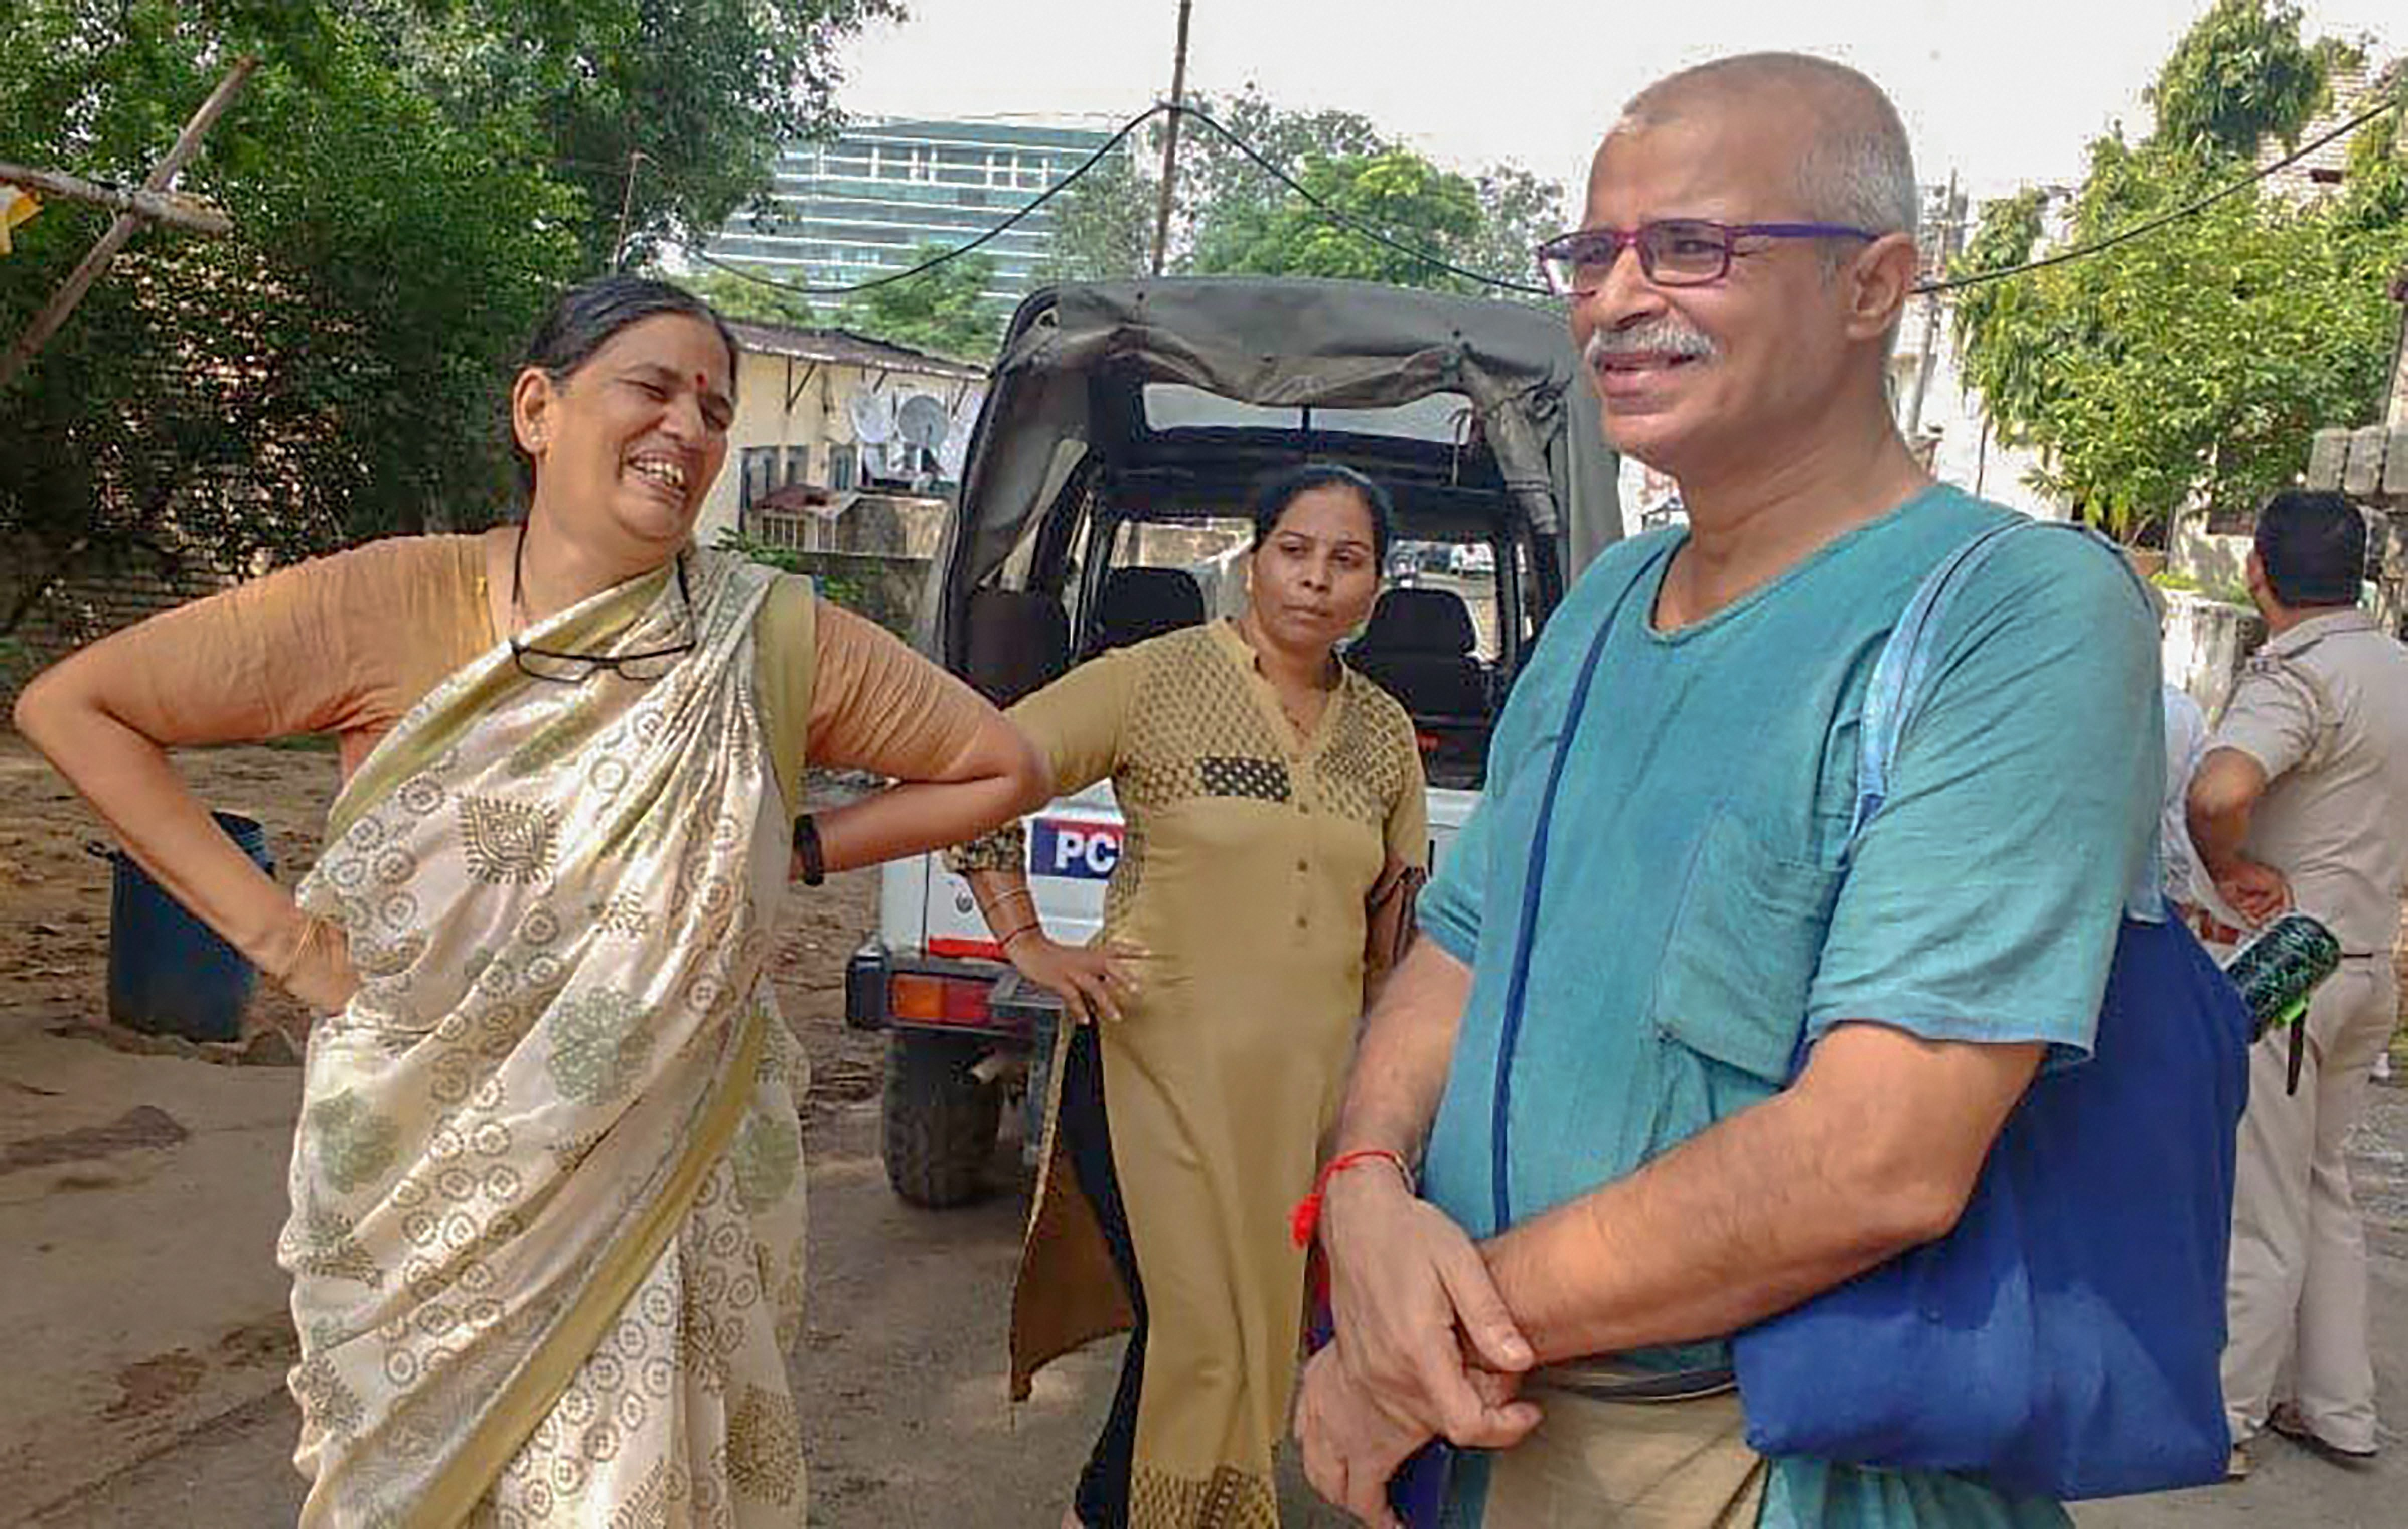 Human rights advocate Sudha Bharadwaj (L) after she was arrested by the Pune police in connection with the Bhima Koregaon violence, in Faridabad on August 28, 2018. PTI file photo